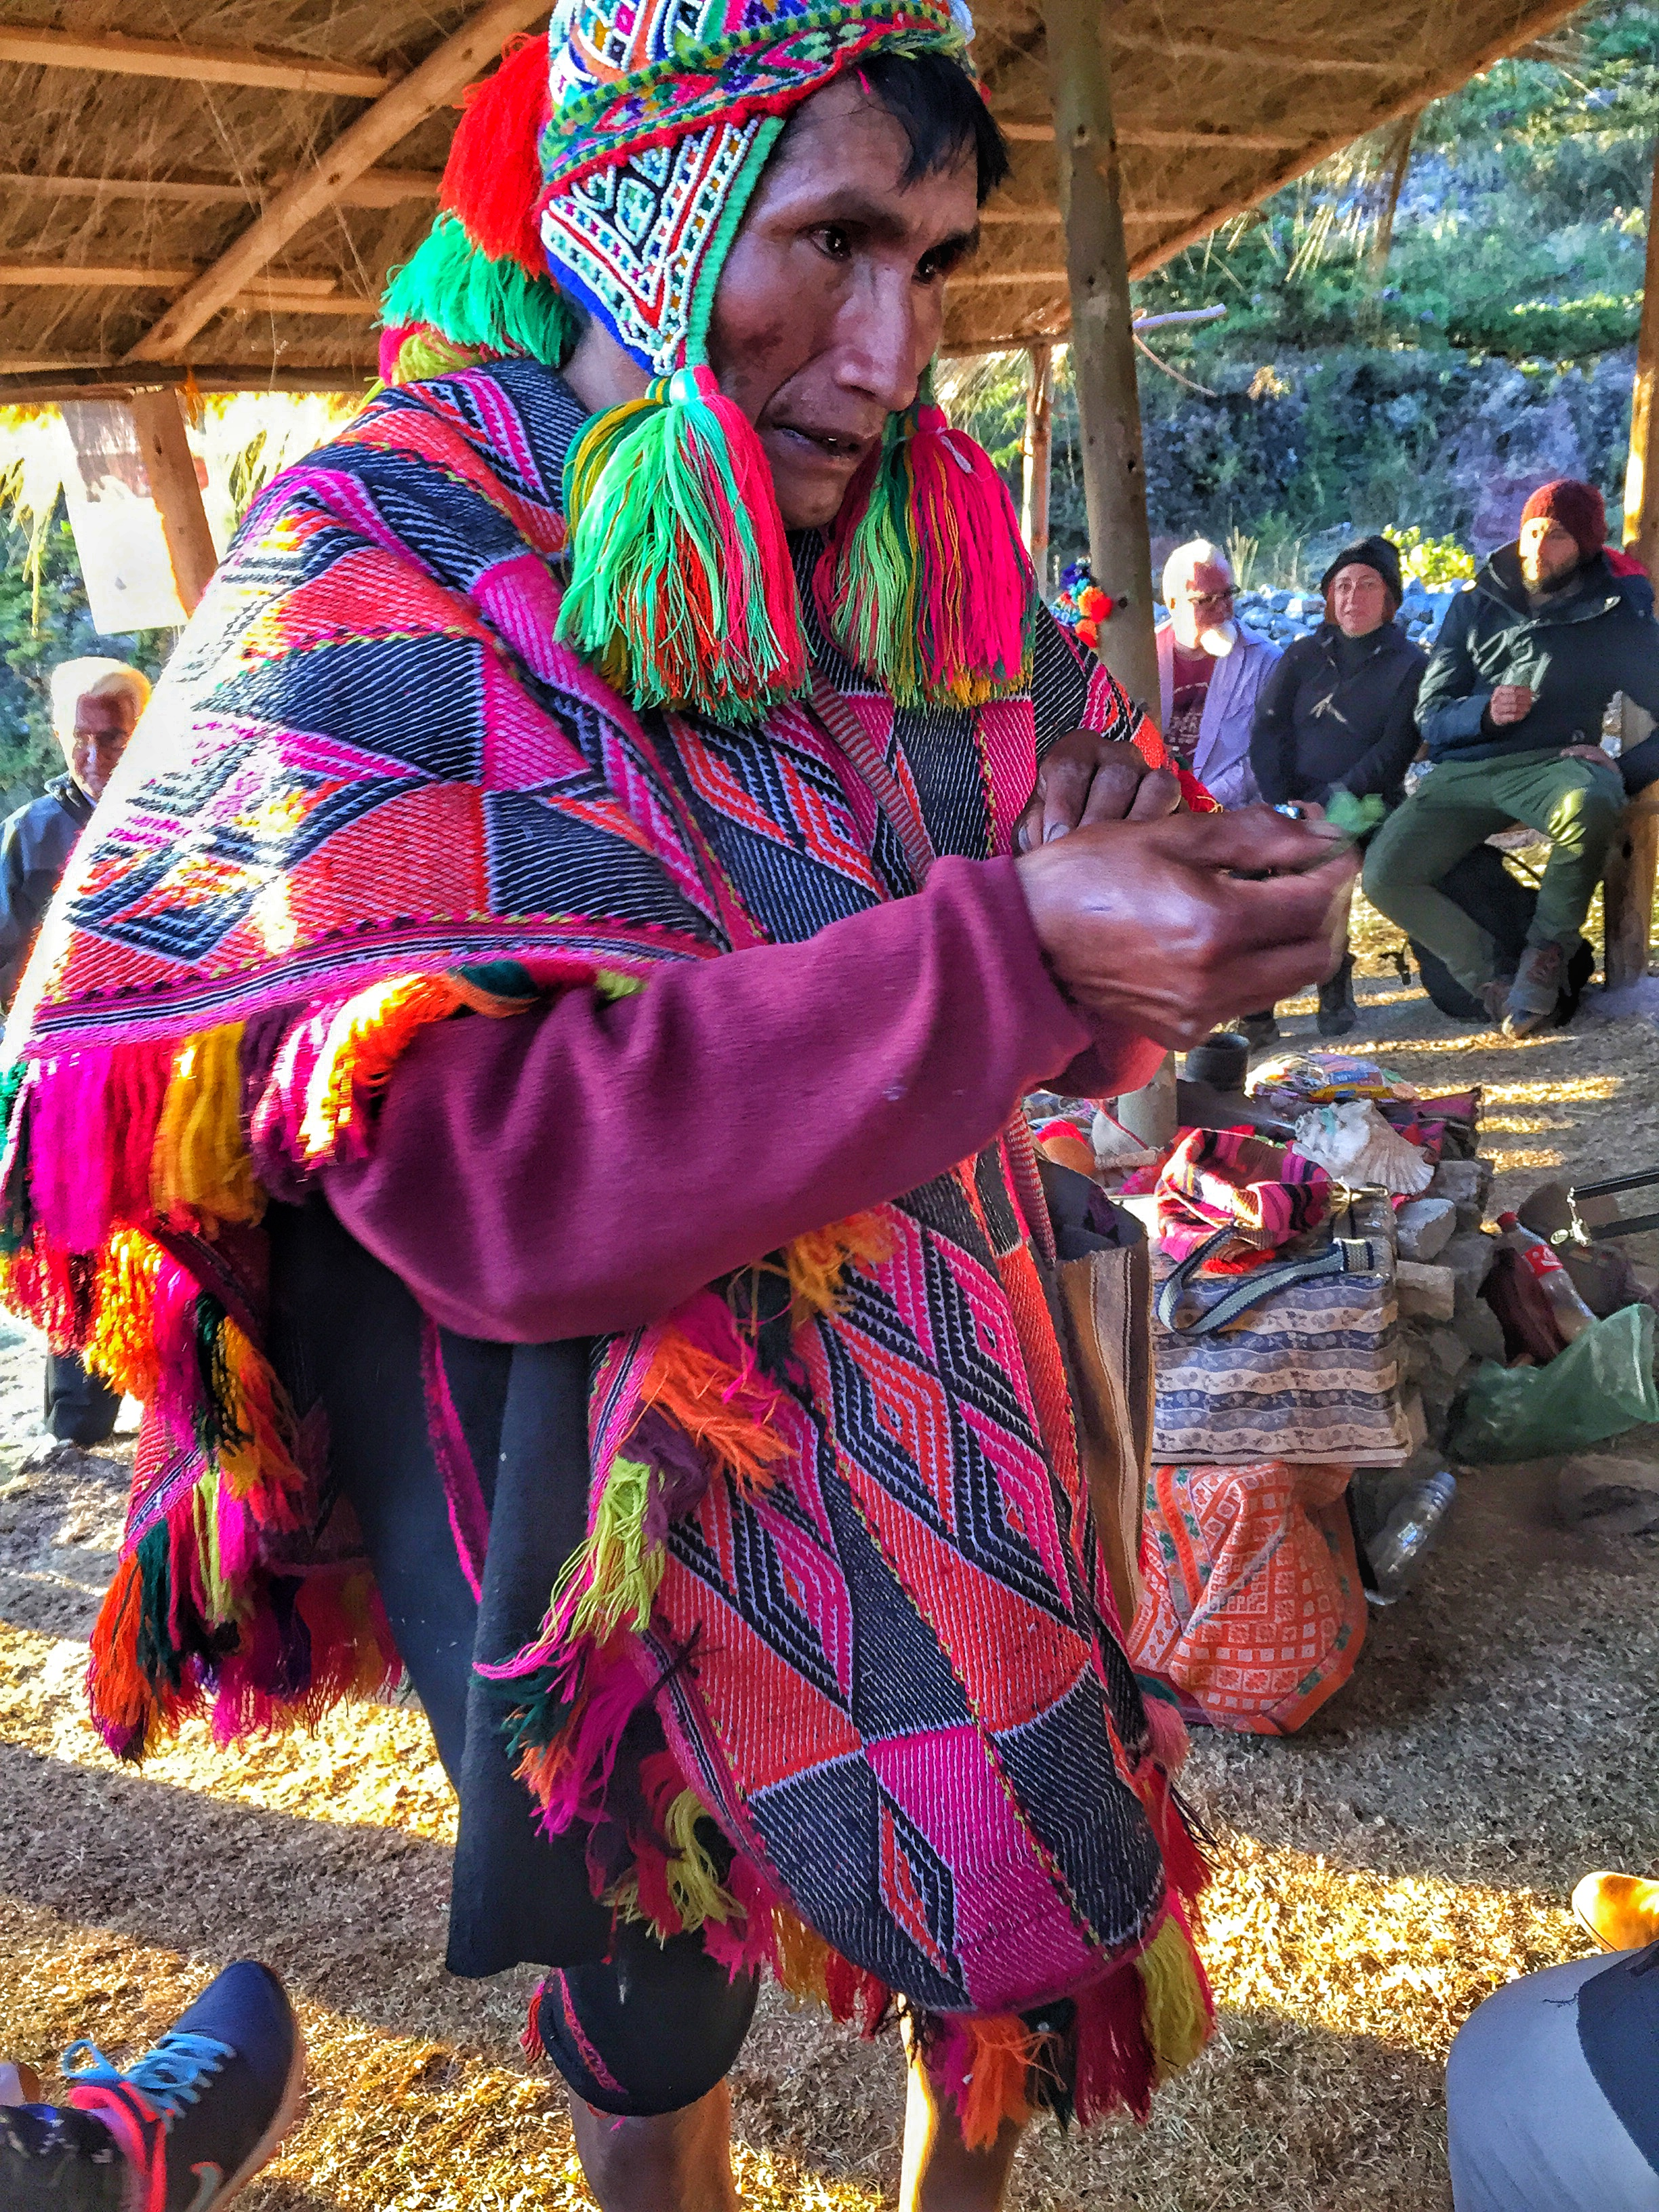 A Quechuan Priest offering prayers to the spirits. The Quechuan people revere Pachamama, Mother Earth.